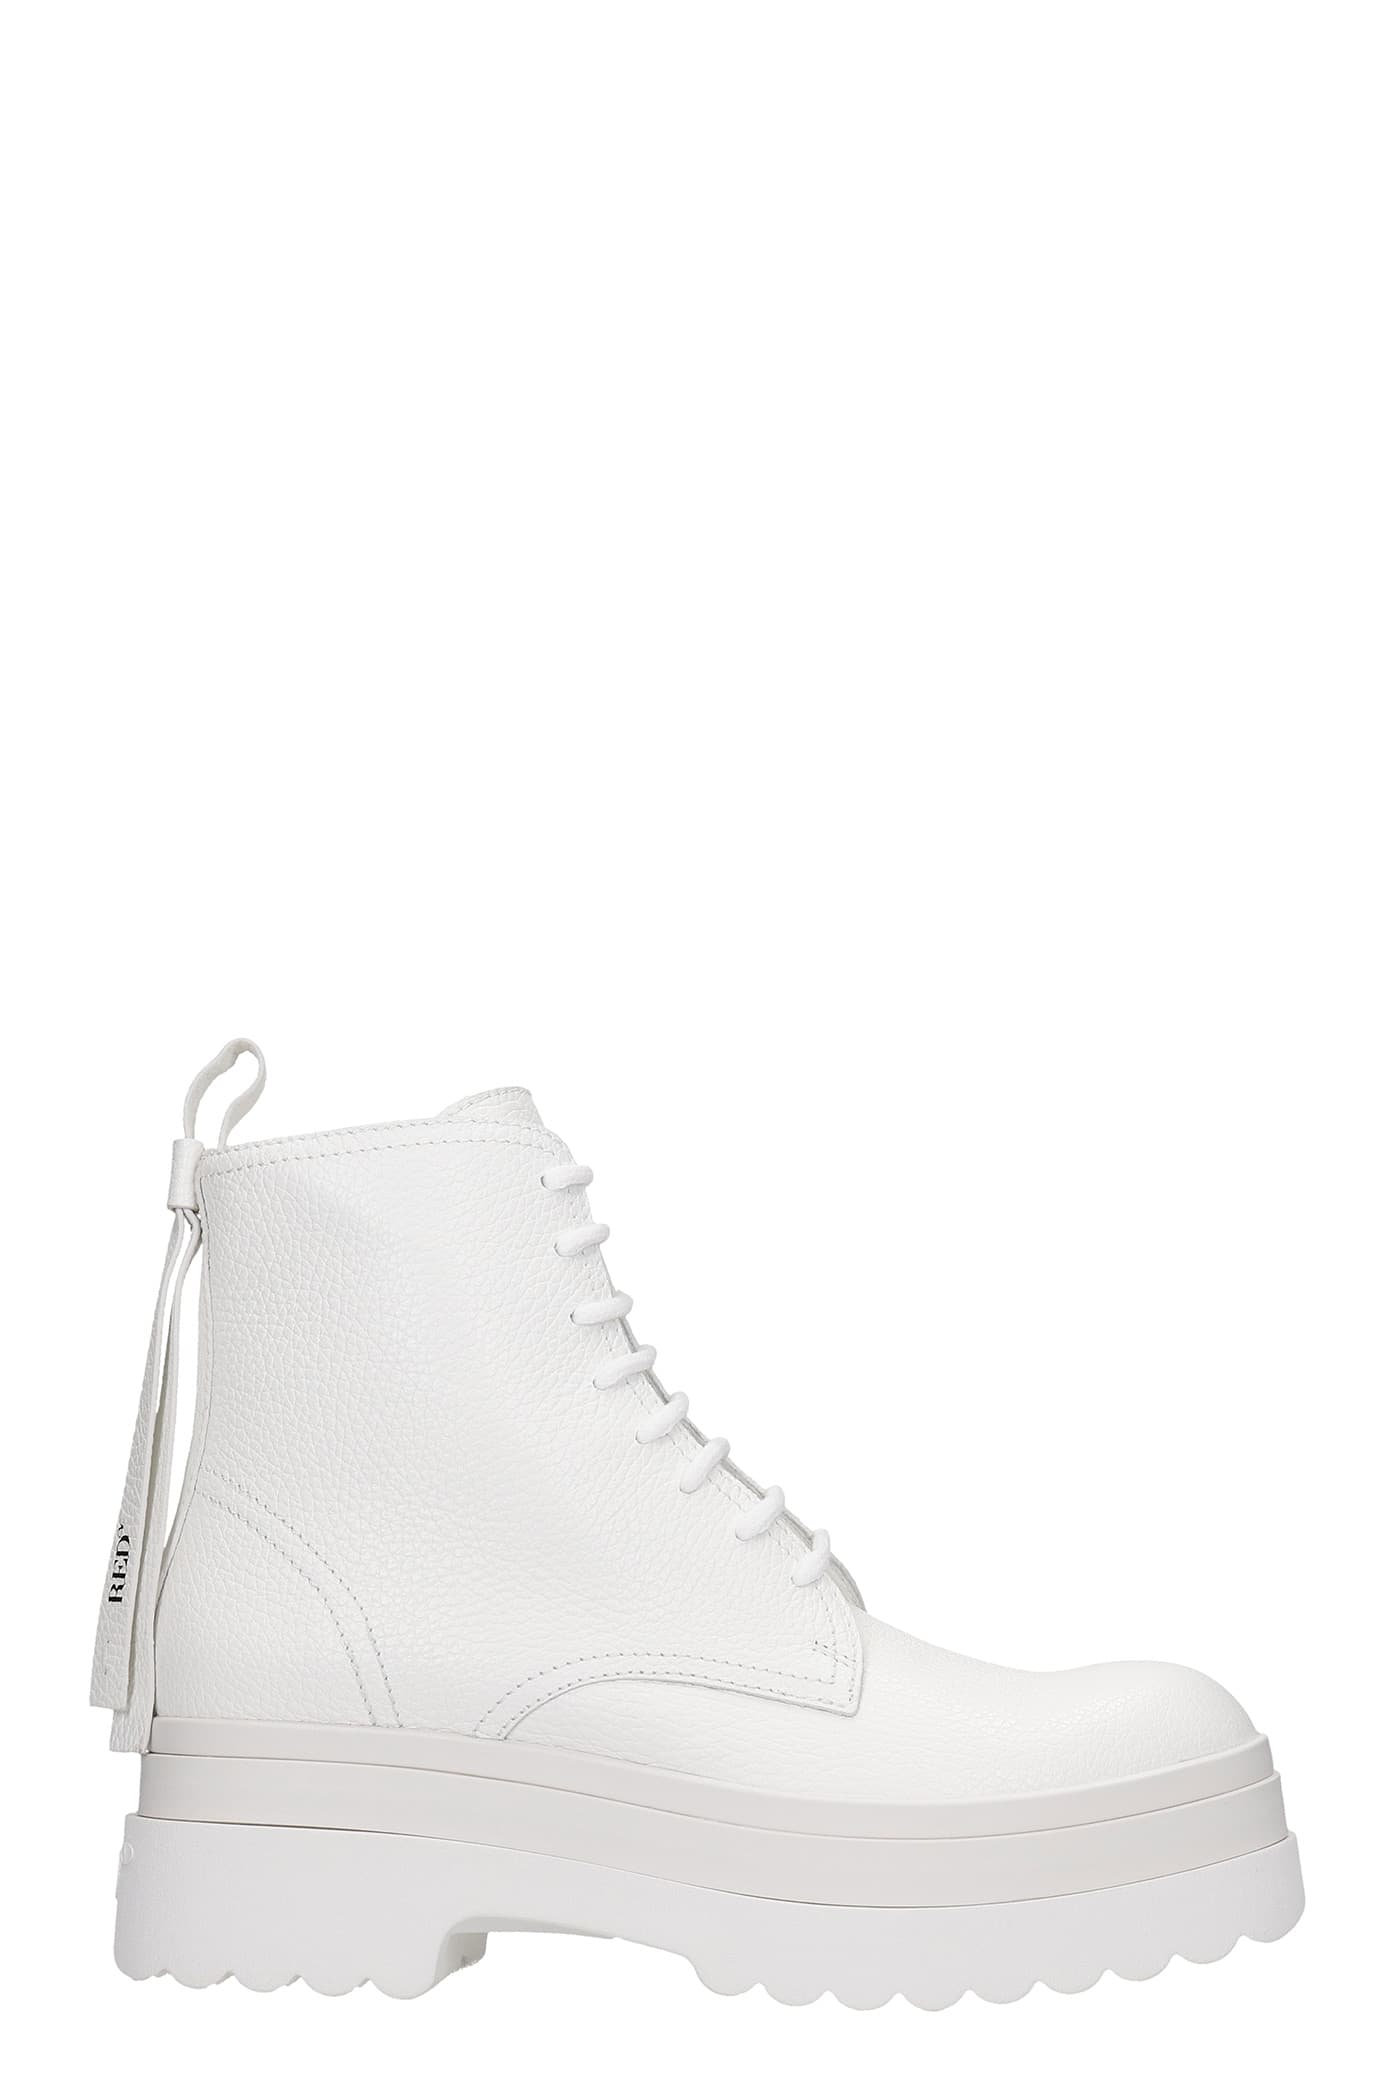 Red Valentino COMBAT BOOTS IN WHITE LEATHER